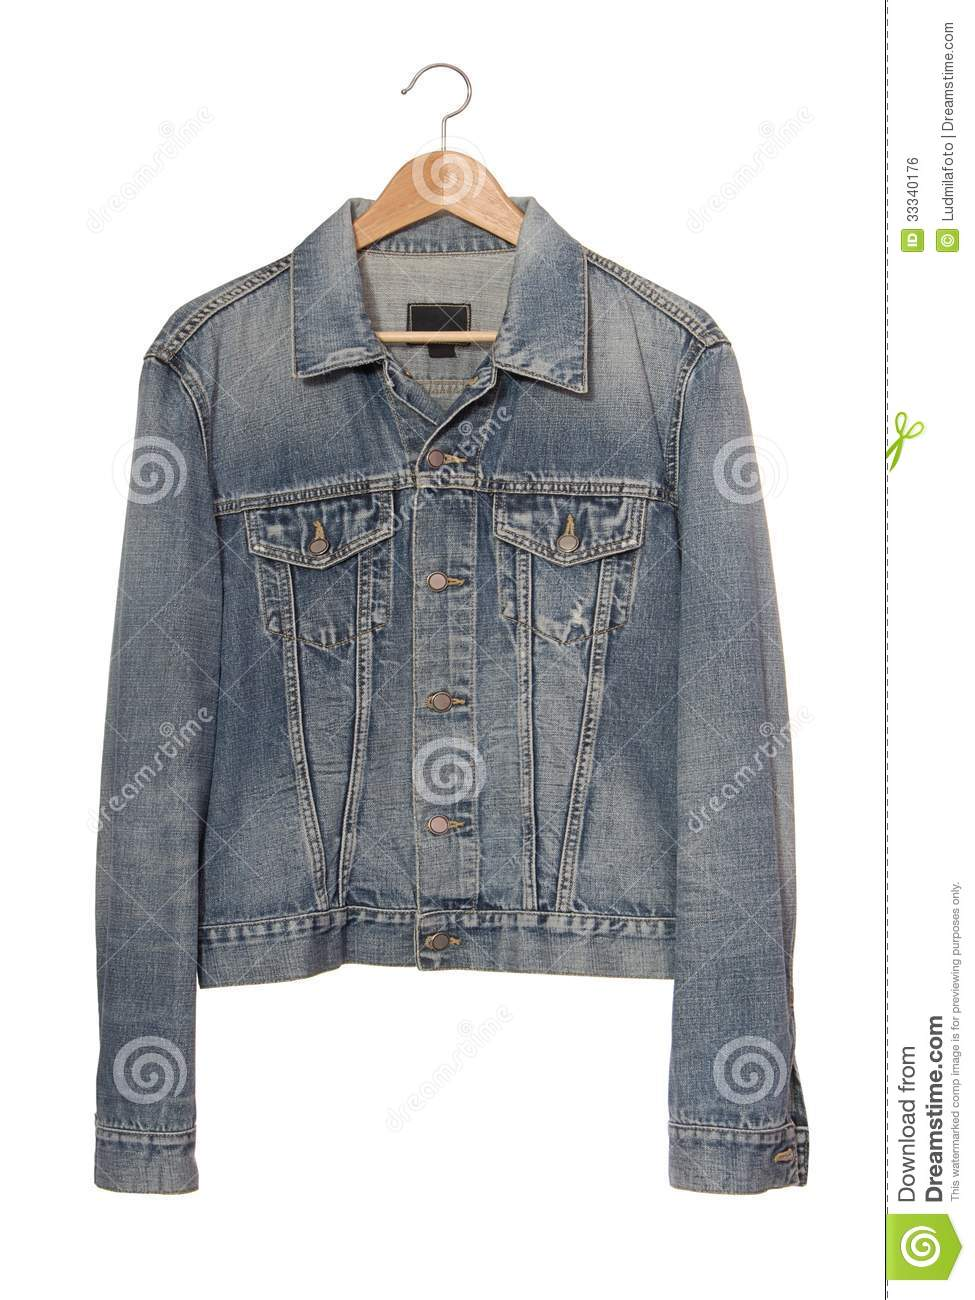 Denim Jacket On Coat-hanger Royalty Free Stock Image - Image: 33340176